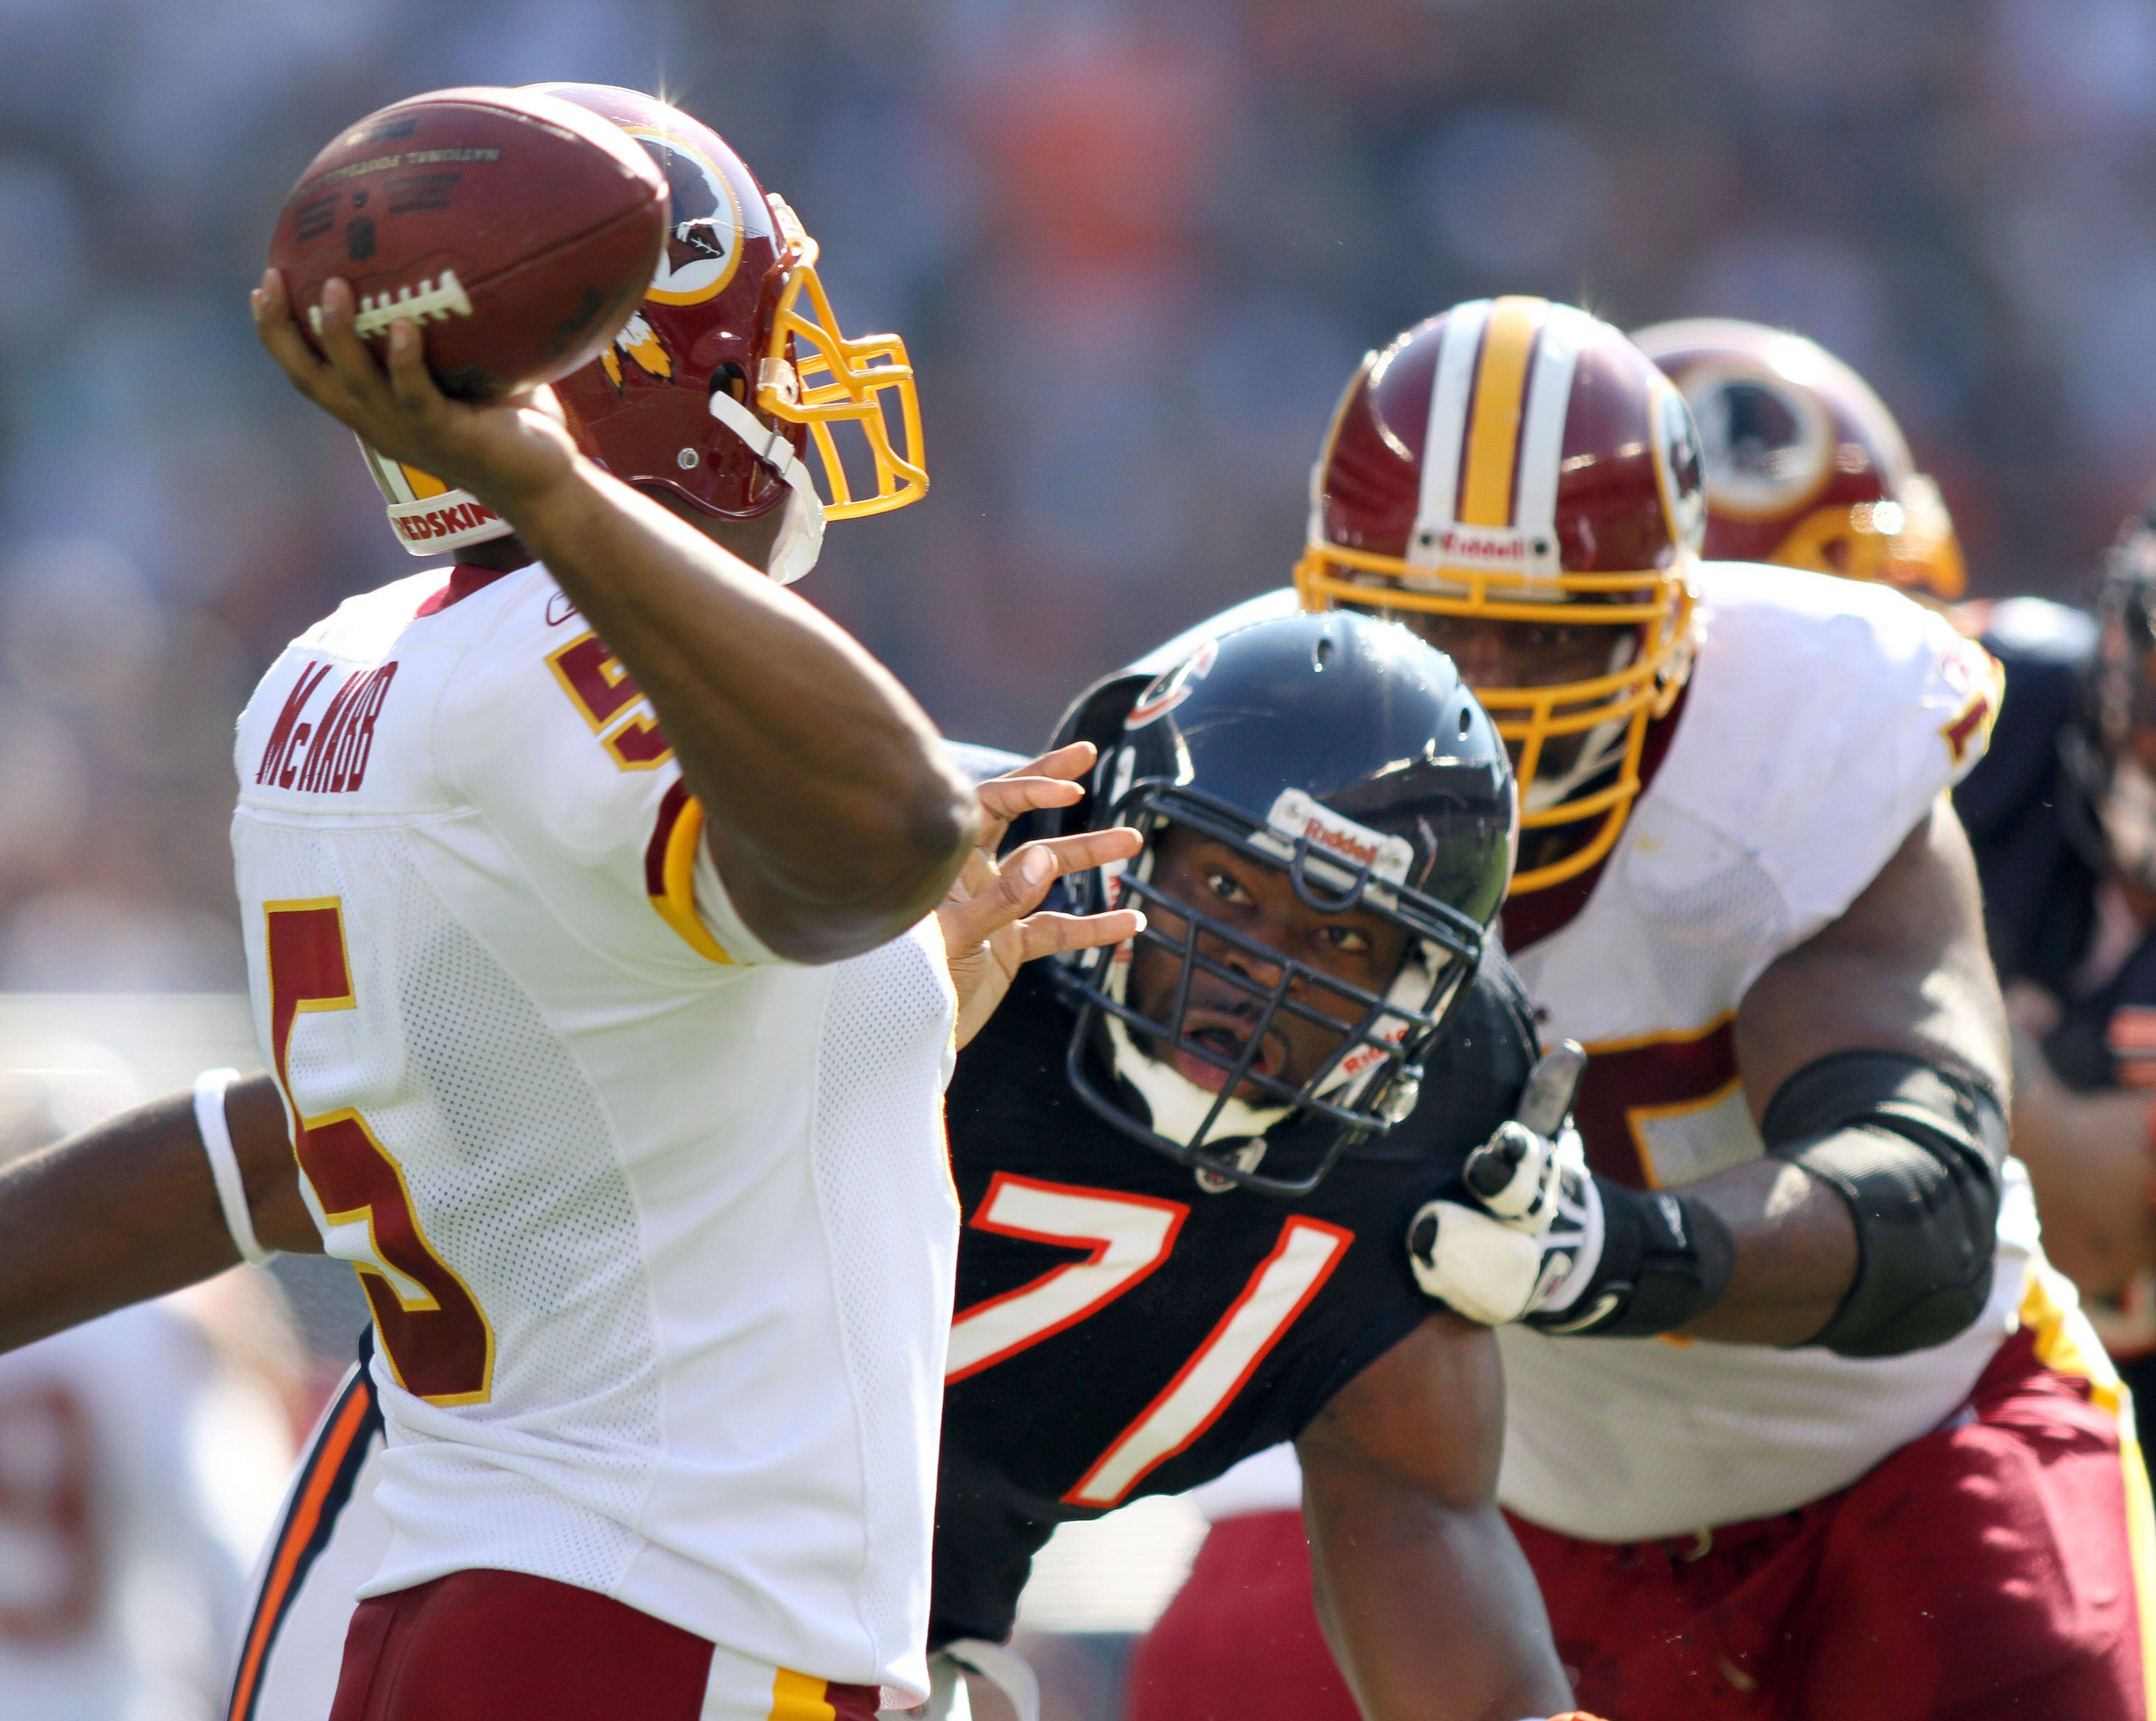 Bears defensive end Israel Idonije puts pressure on Redskins quarterback Donovan McNabb earlier this season.